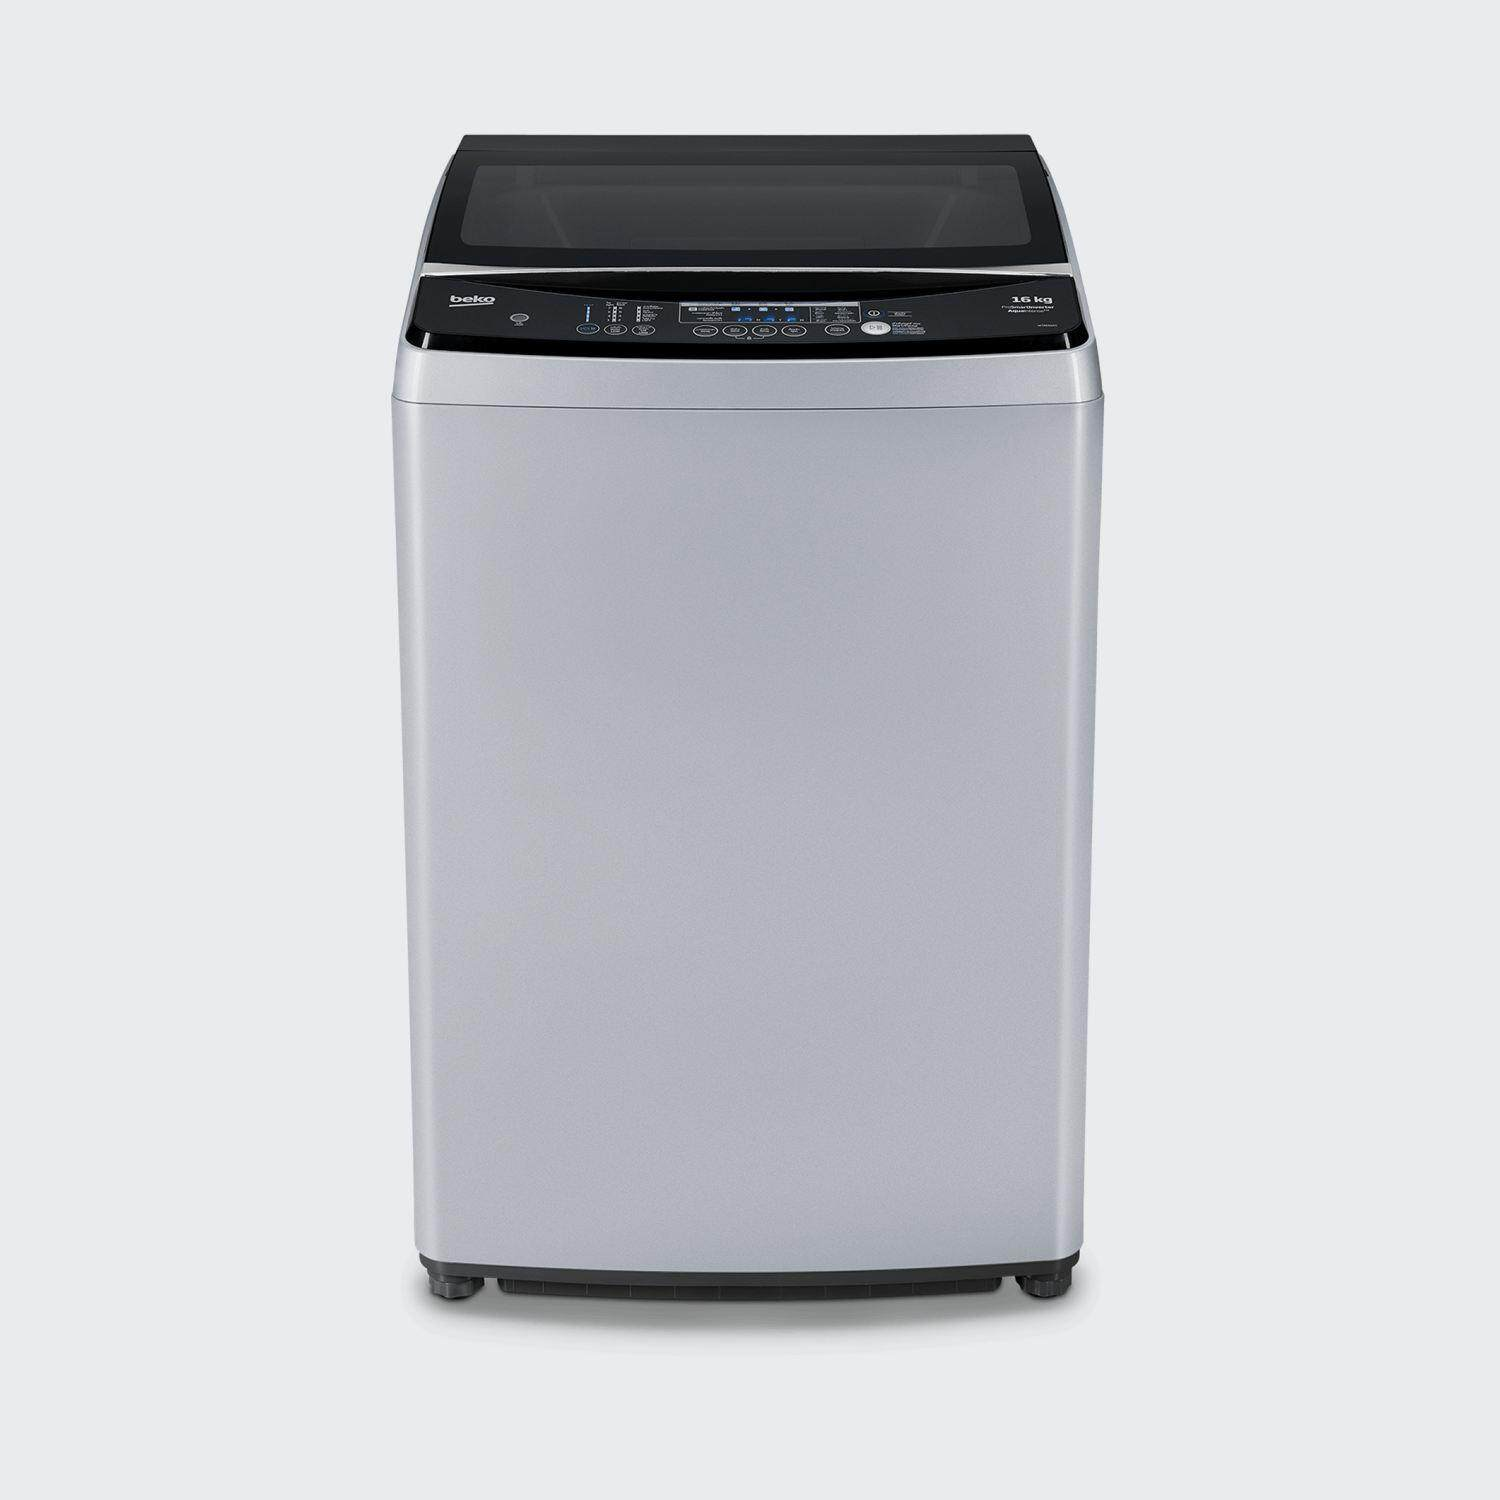 Beko (MADE IN EUROPE) 18KG Direct Drive LED Display Stainless Steel Top  Load Washer